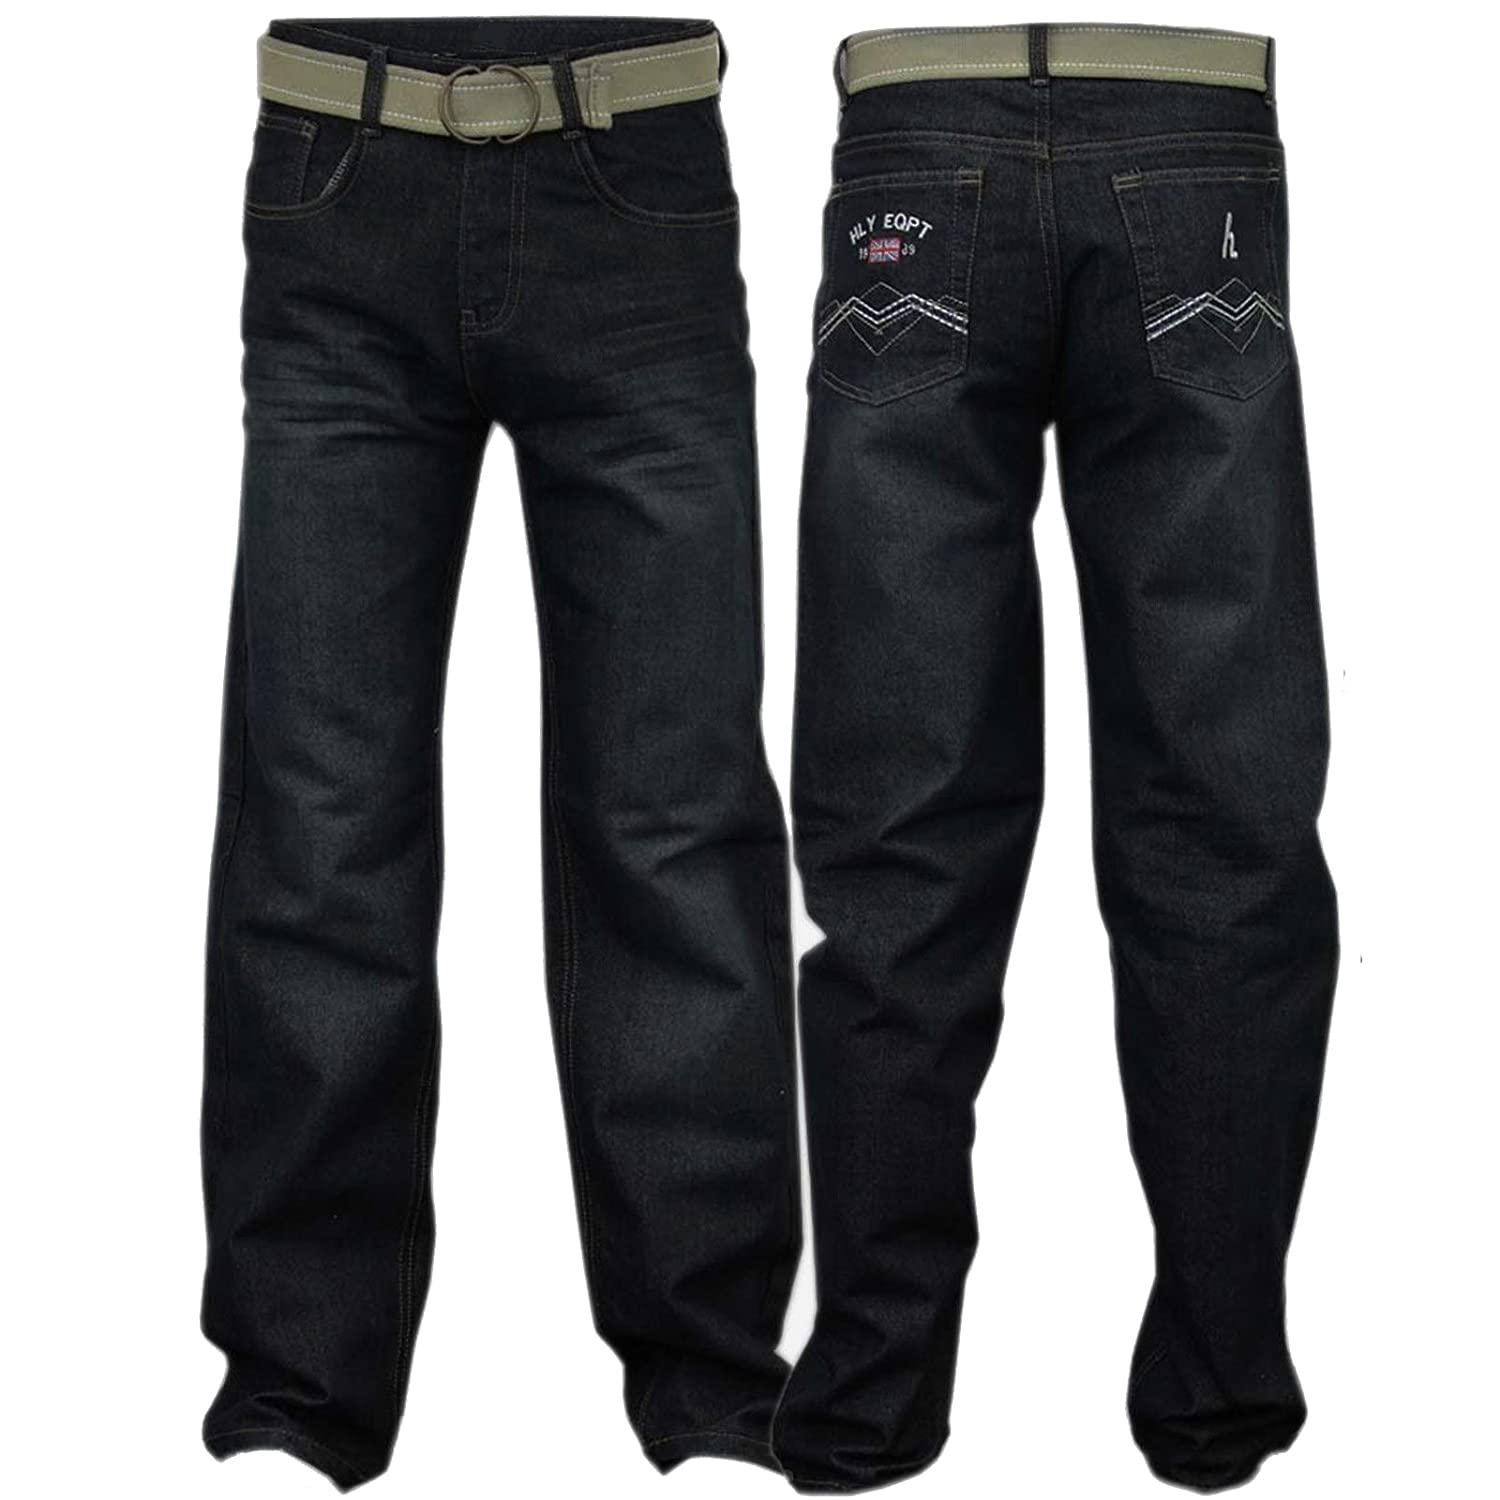 New Full Length Five Pocket Boys Jeans Regular Fit Classic Stretchy Denim  With Belt Trouser: Amazon.co.uk: Clothing